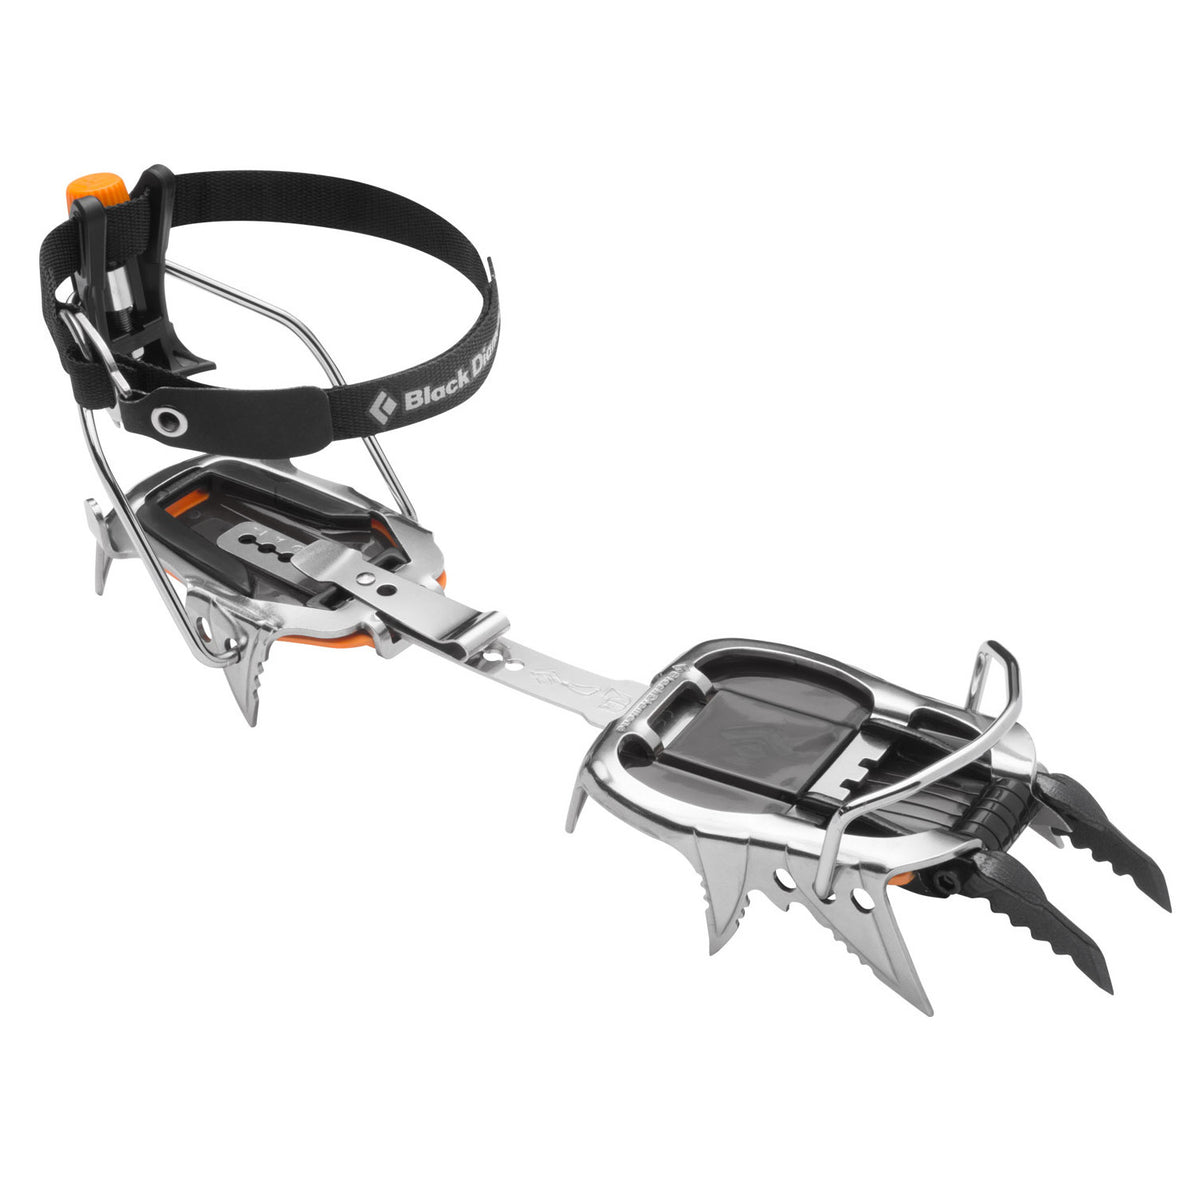 Black Diamond Cyborg Pro Crampon, front side view